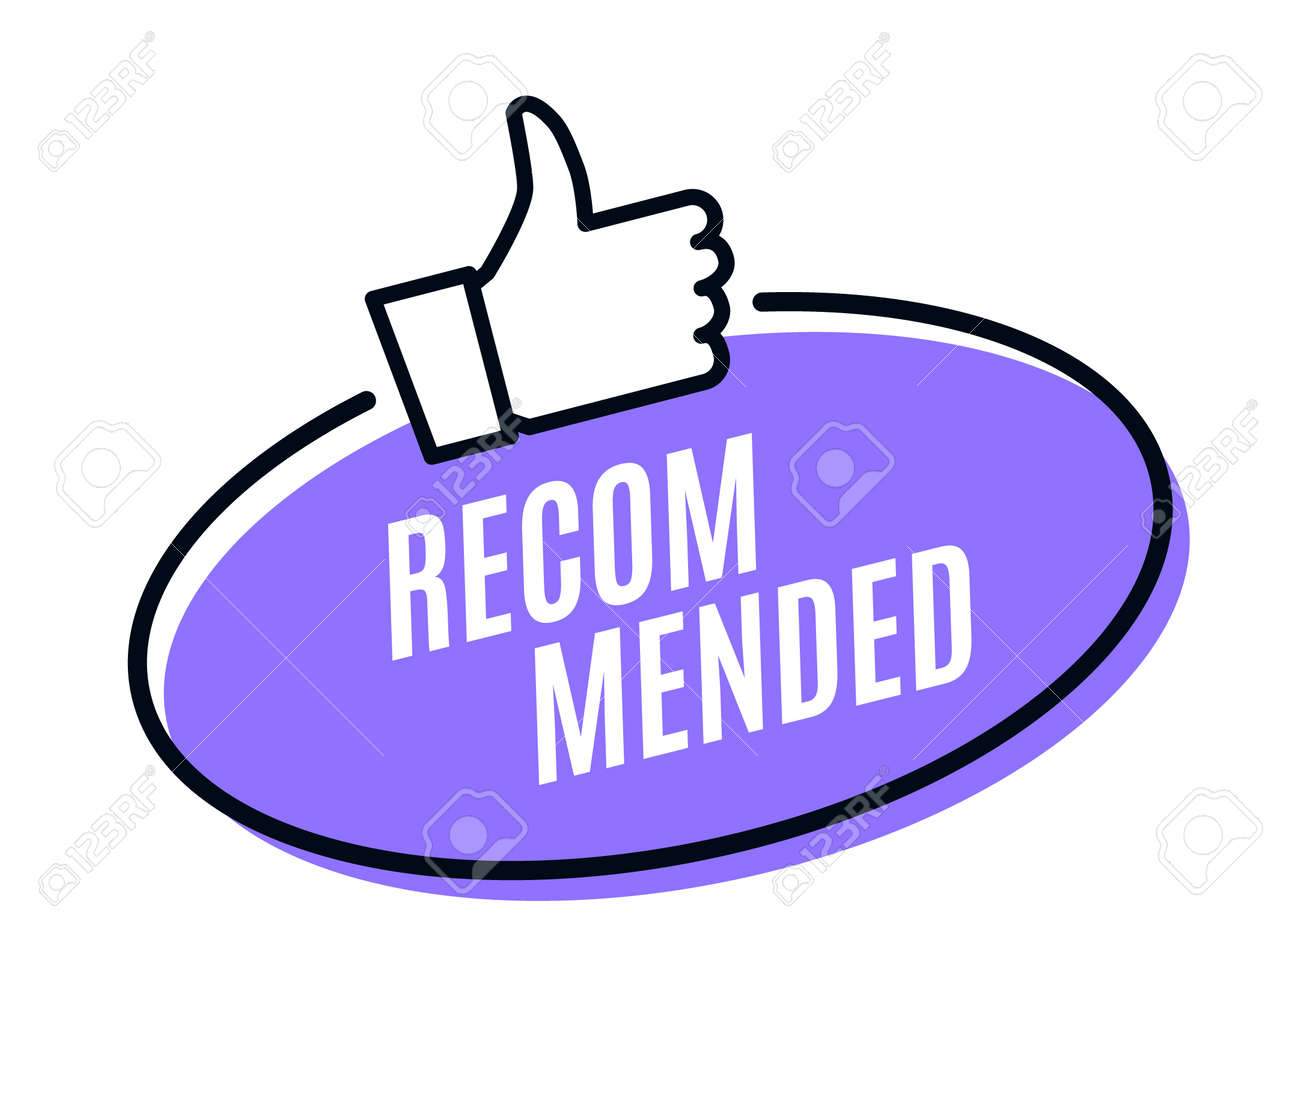 Recommend best advantage icon. Good job ok recommend thumb up sticker - 168932610